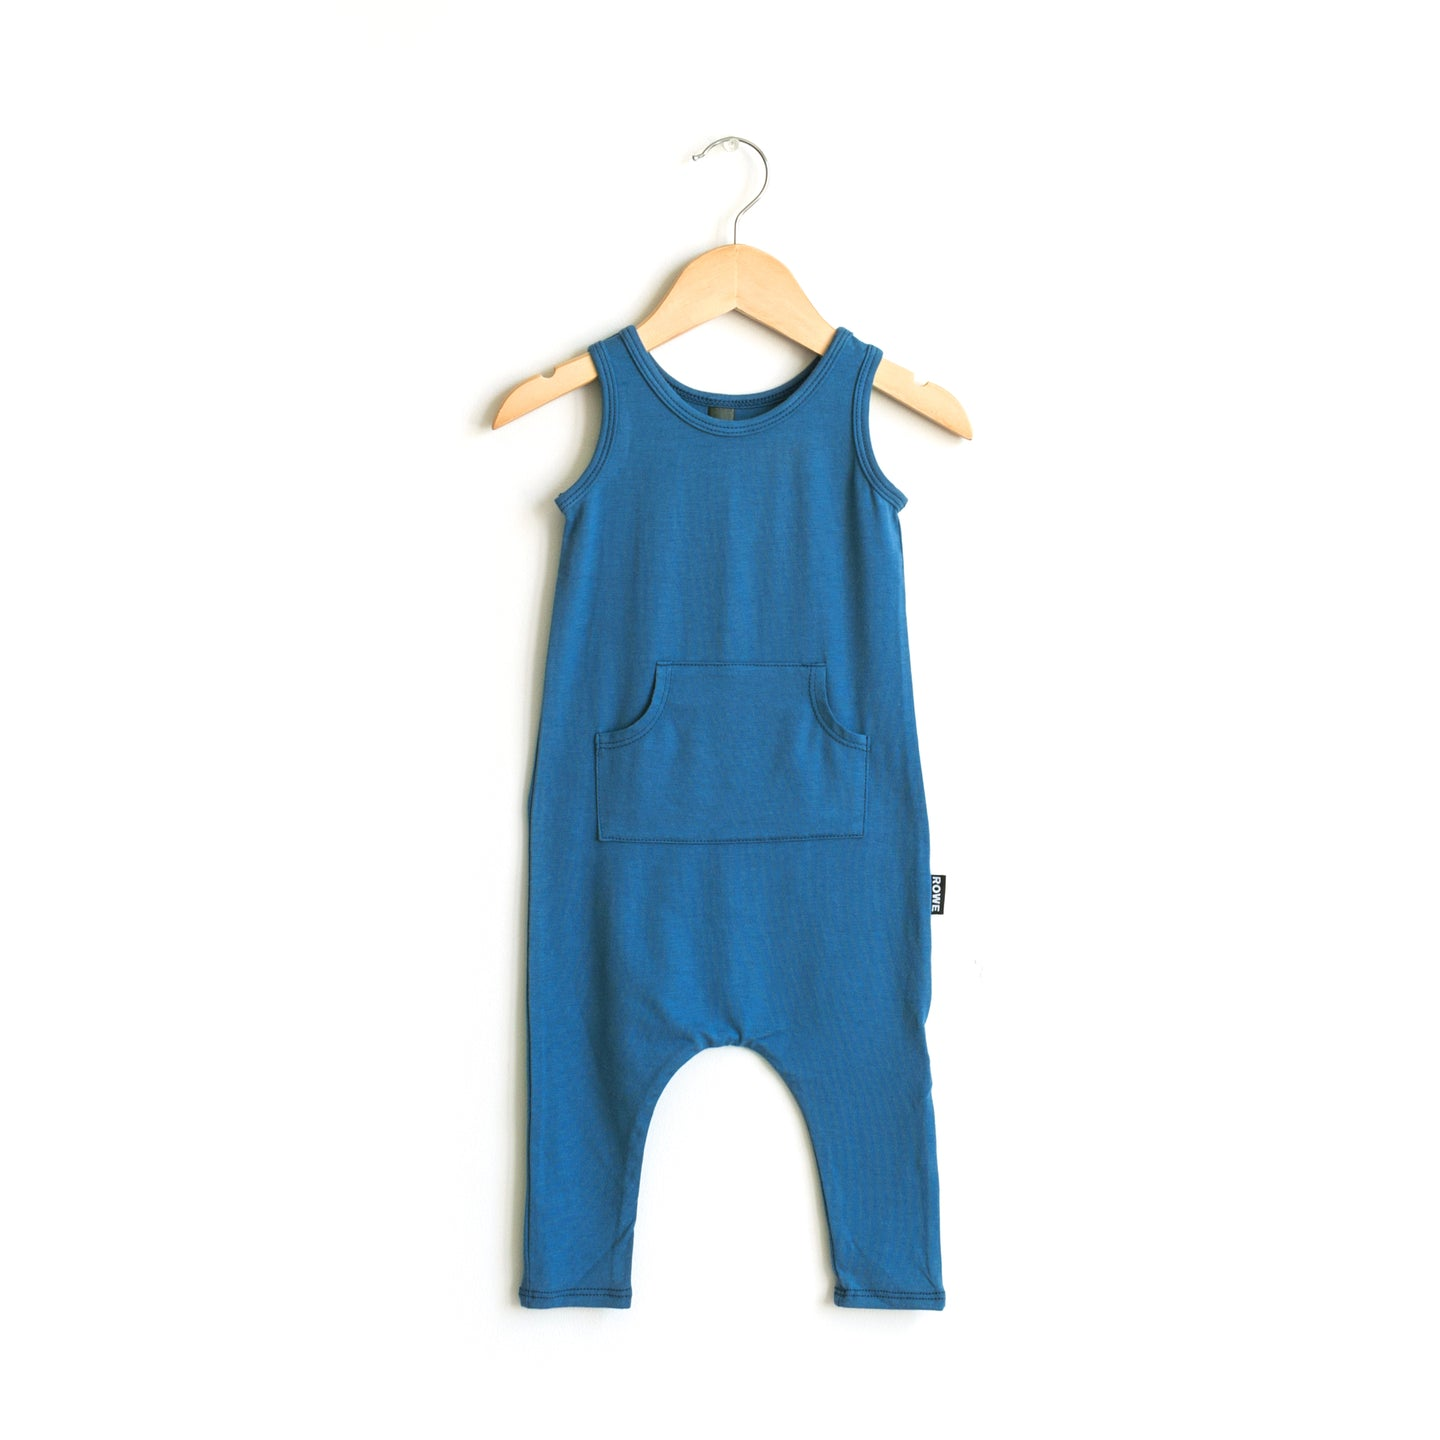 The Summer Romper in Ocean Blue